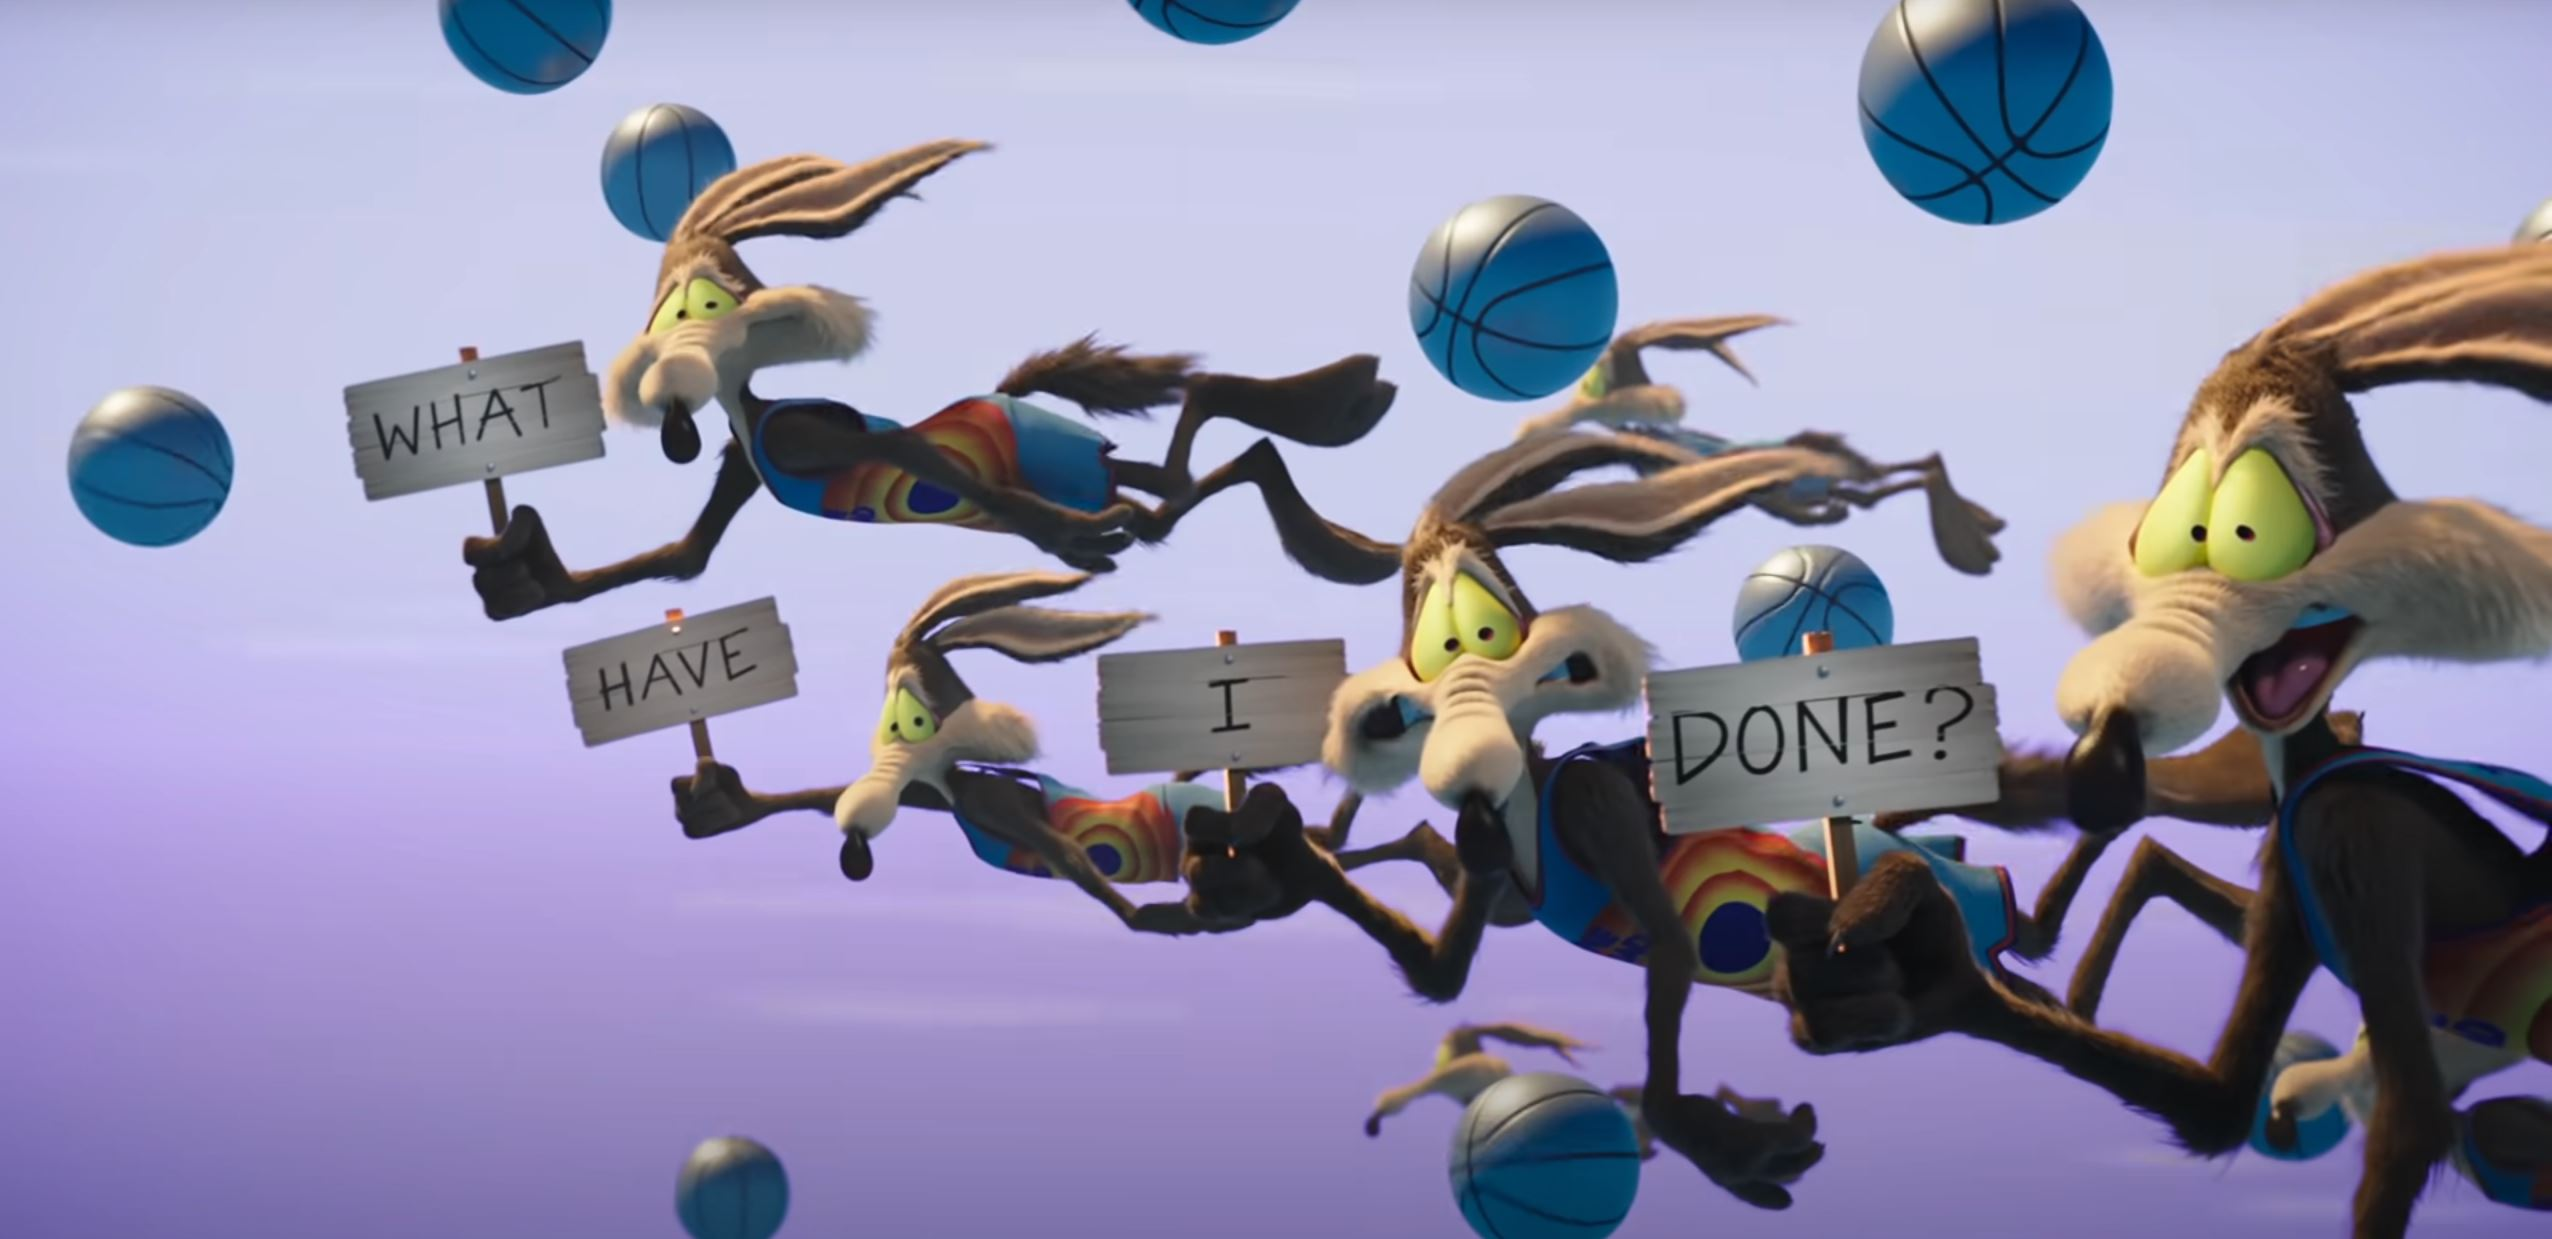 """Several copies of Wile E. Coyote hurdle through the air together, along with several basketballs, holding up signs that say """"What have I done?"""" in this image from Space Jam: A New Legacy"""